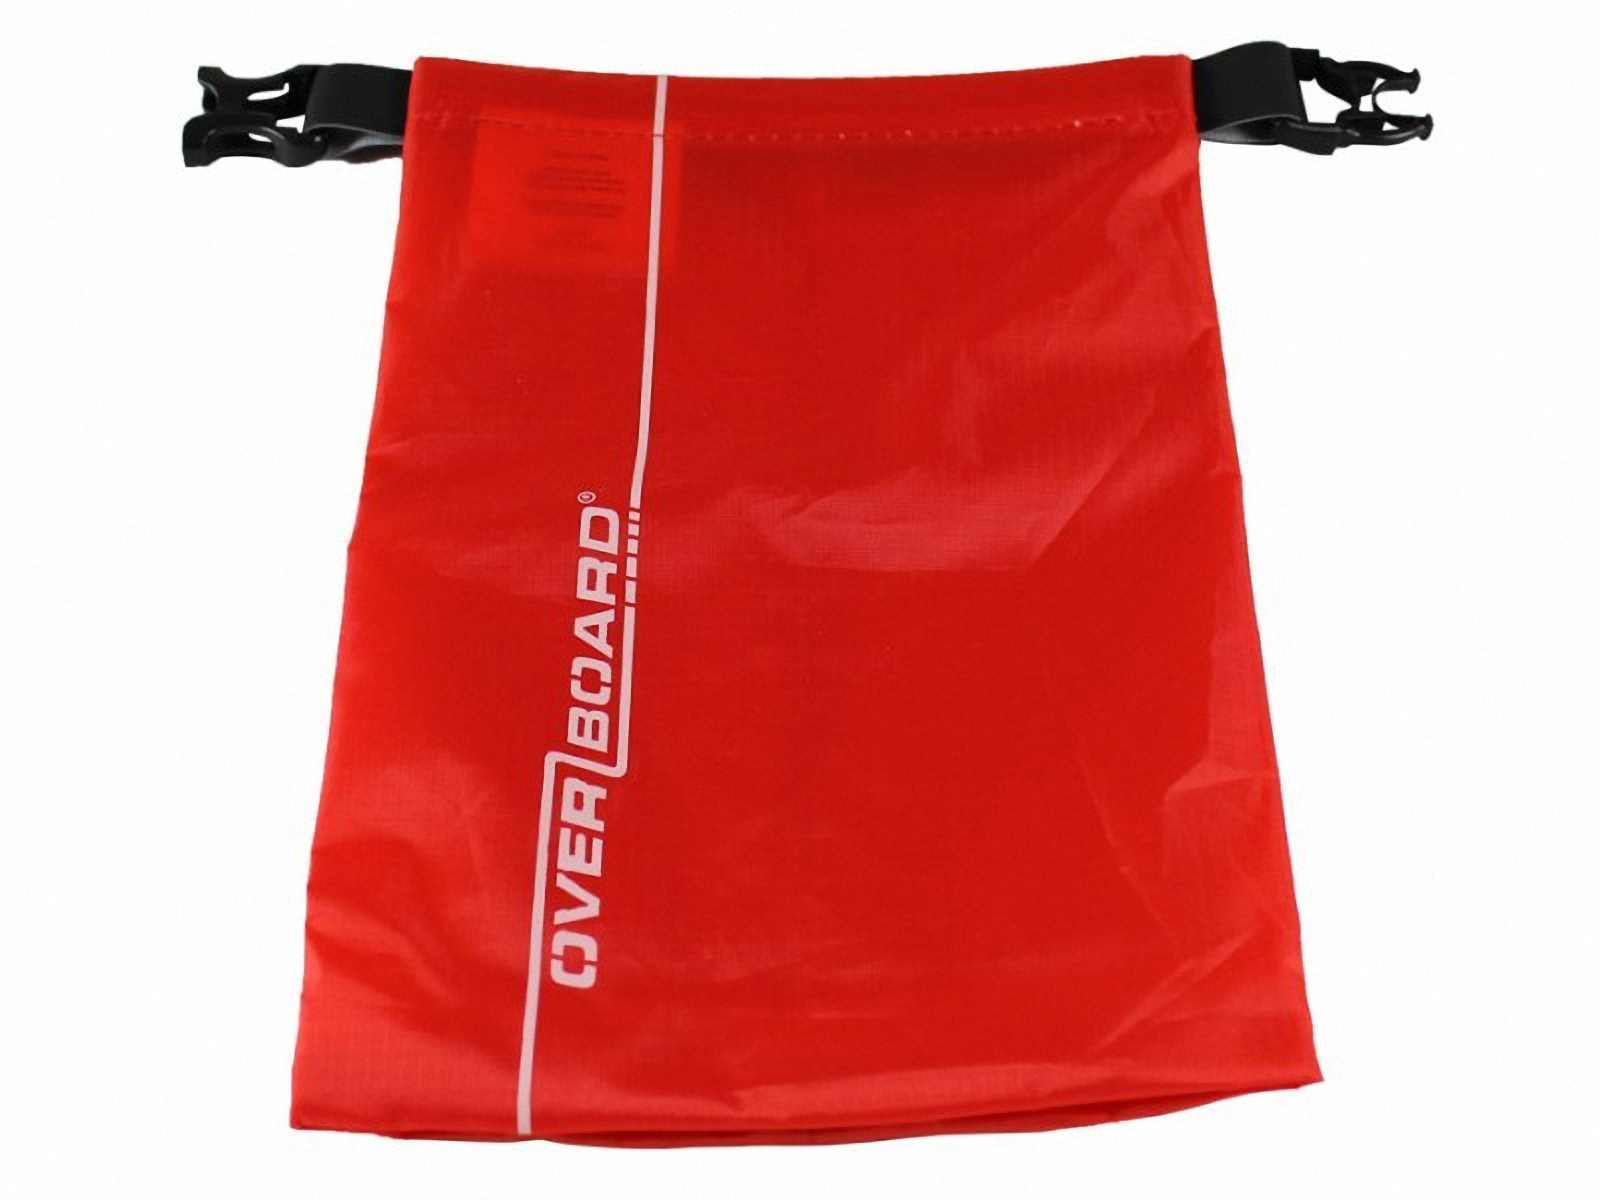 Водонепроницаемый гермомешок OverBoard OB1031R - Waterproof Dry Pouch - 1L (Red) Фото 2